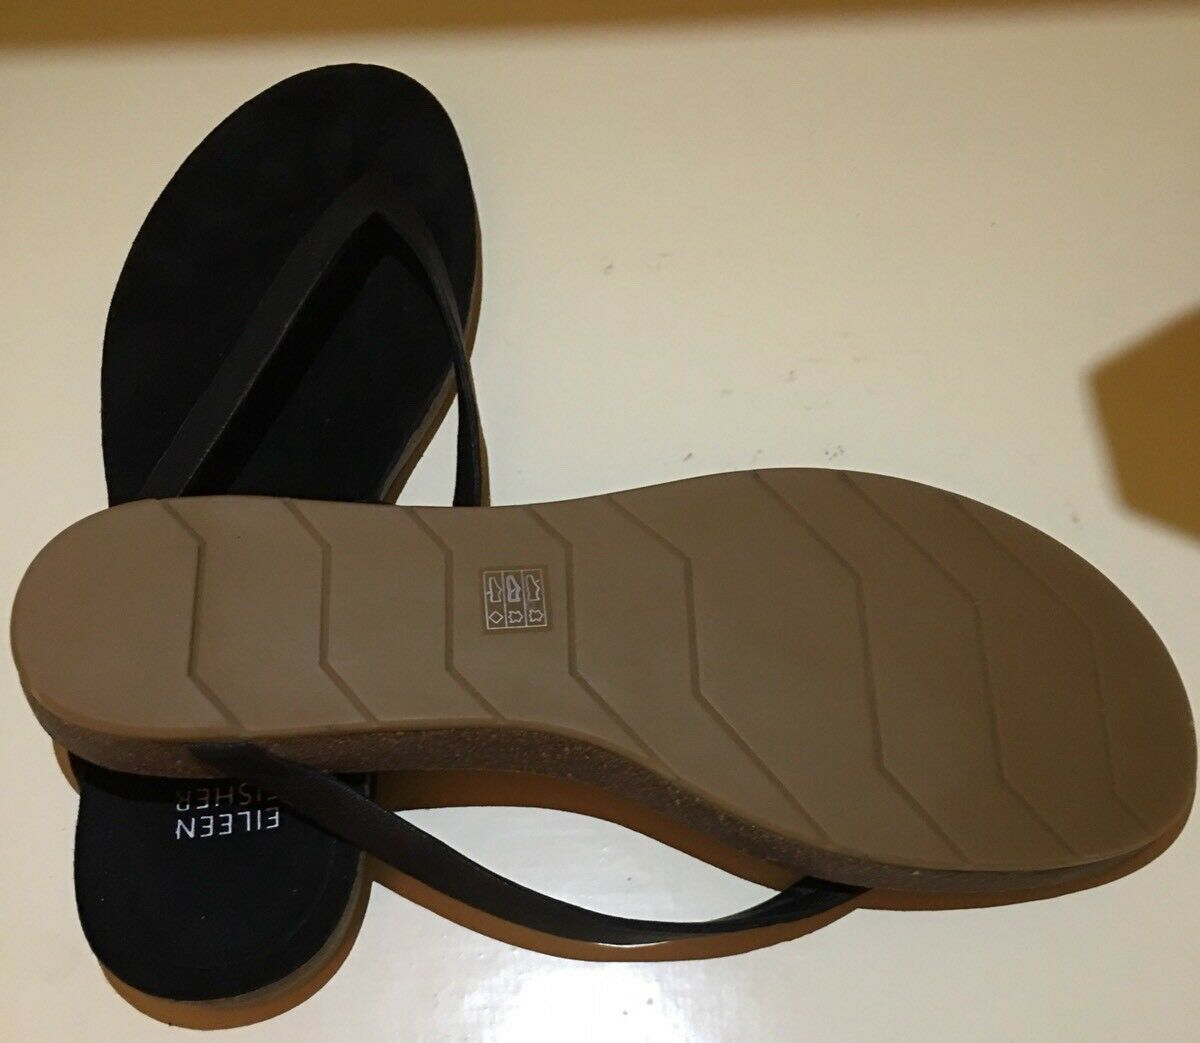 NWOB Eileen Fisher Flip Flops Sandals Black color color color Leather SIze 9.5M 45942b